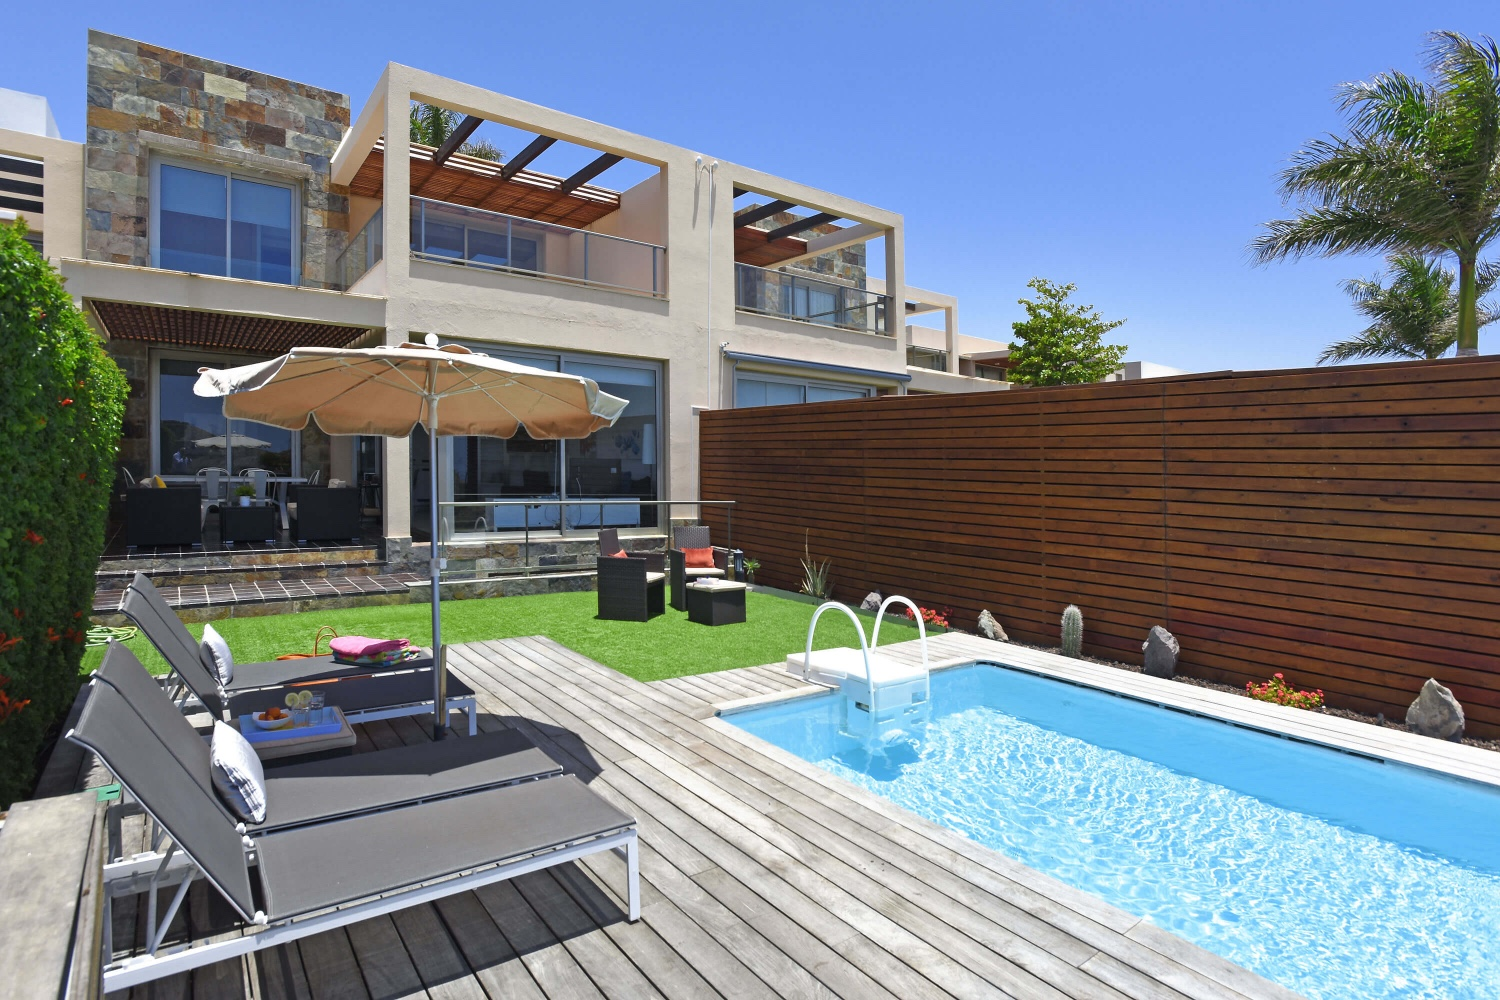 Three-storey villa with four bedrooms, two beautiful terraces with garden furniture and heatable private swimming pool